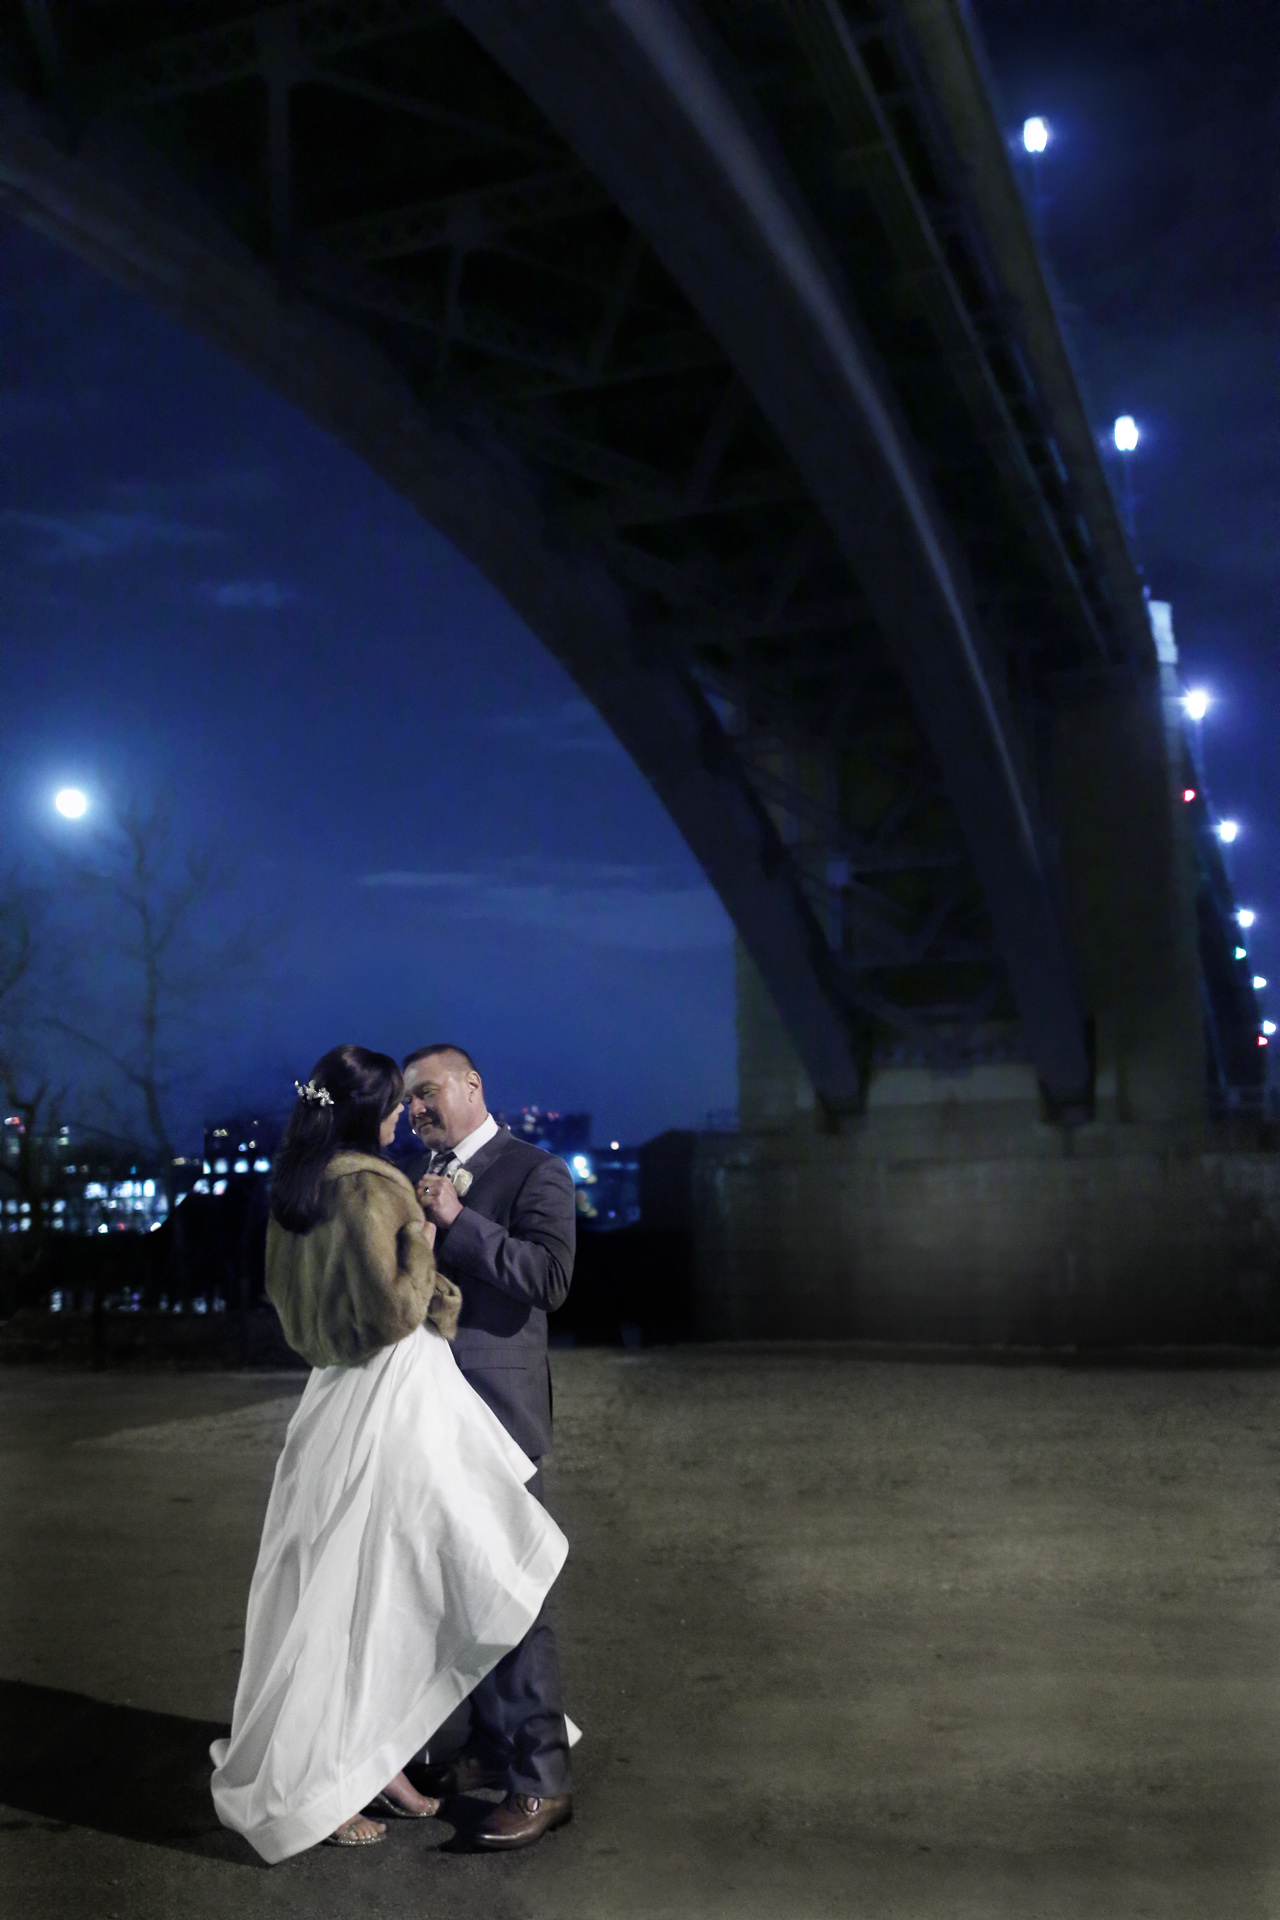 araujo-photo-under-the-bridge-wedding